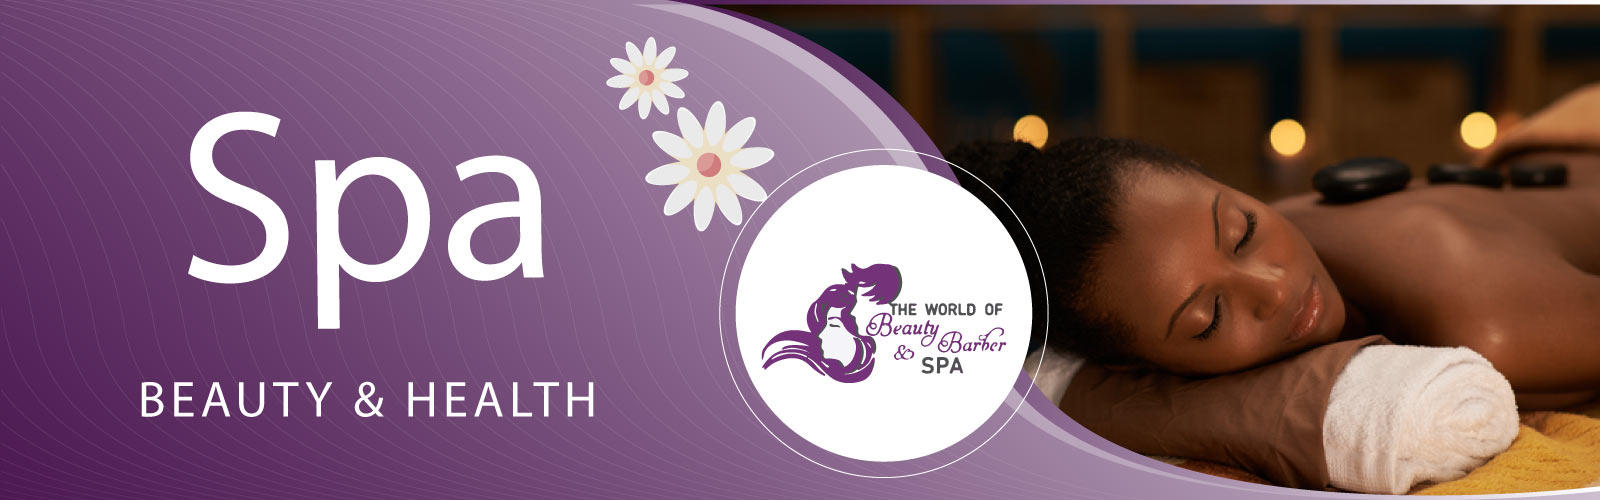 The World Of Beauty Barber & Spa